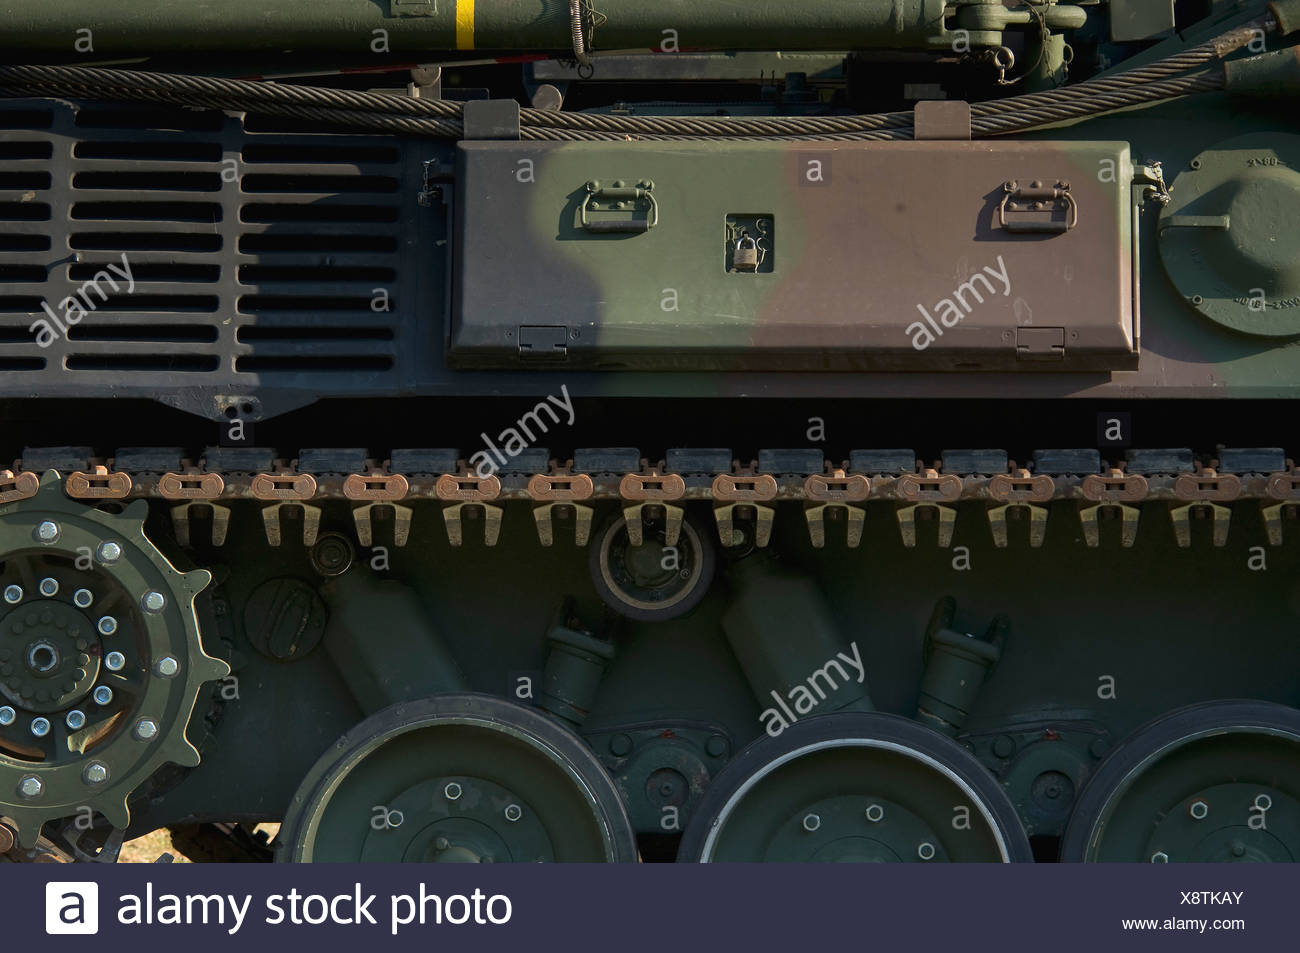 Bundeswehr, federal army, tank, detail of drive chain, PublicGround - Stock Image